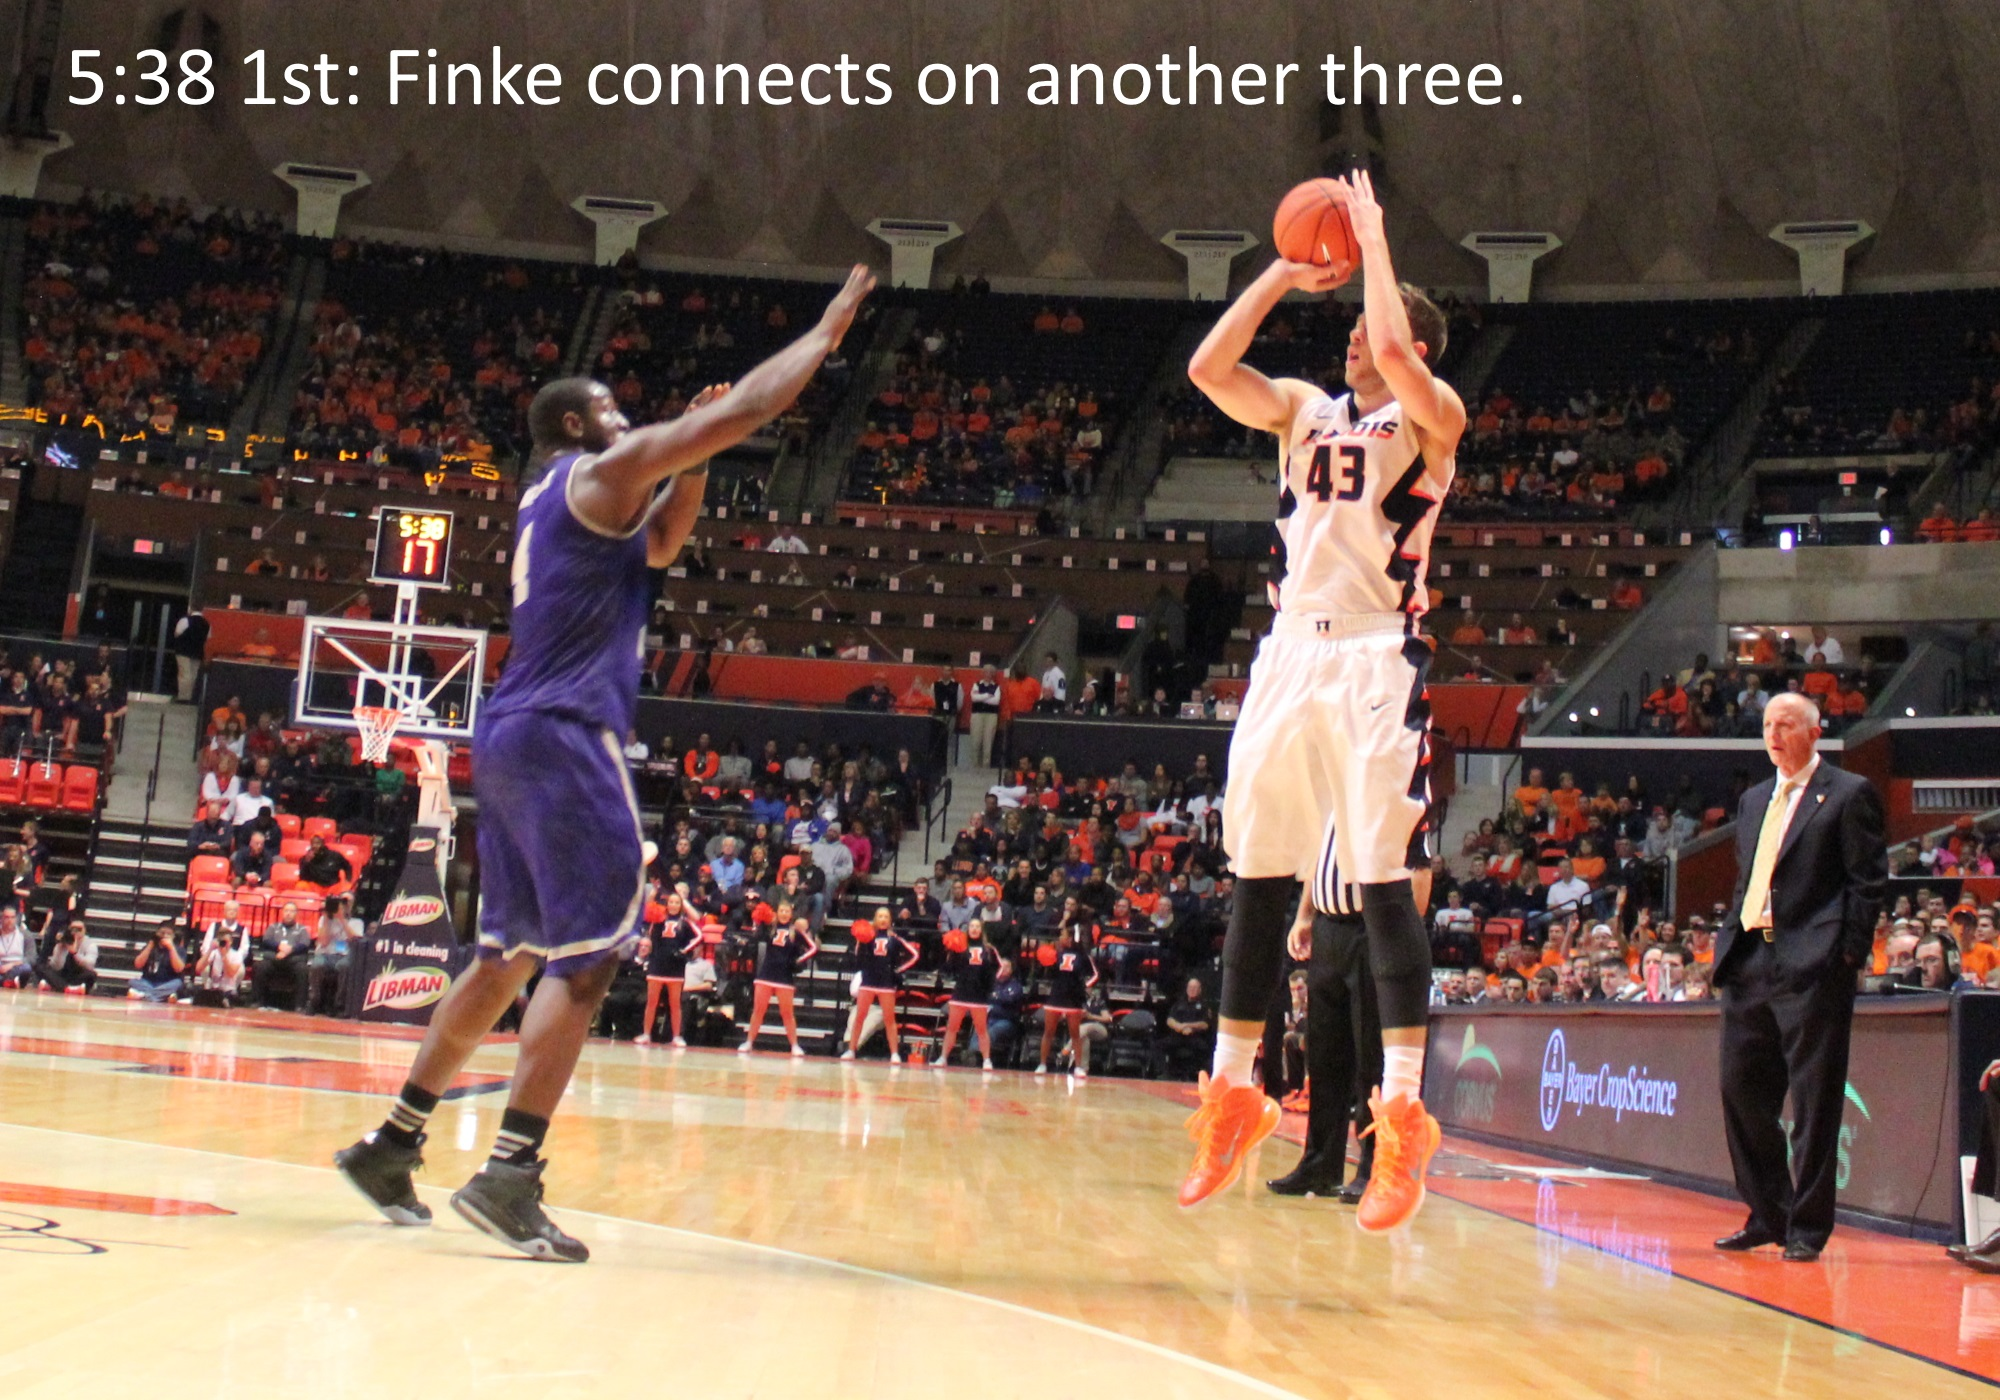 Finke connects on another three